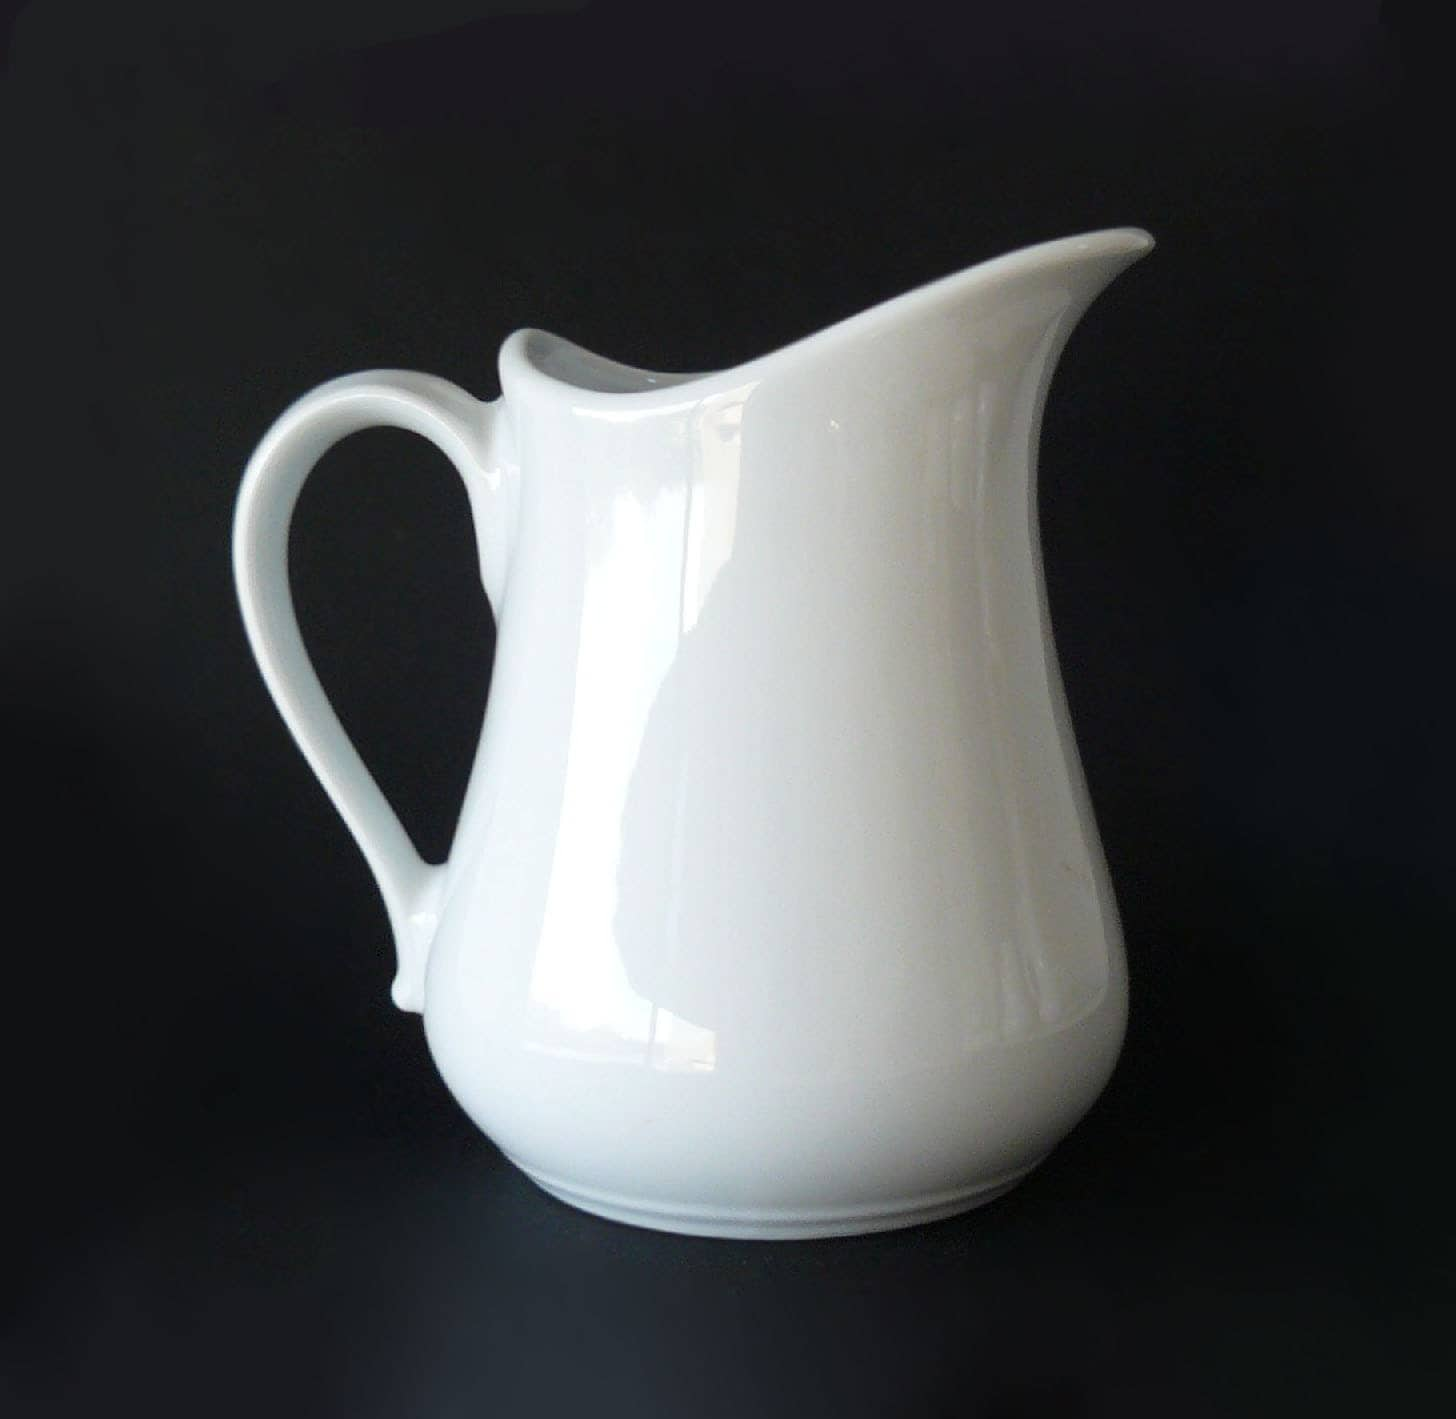 Apilco White Porcelain Large Serving Pitcher Made In France 32